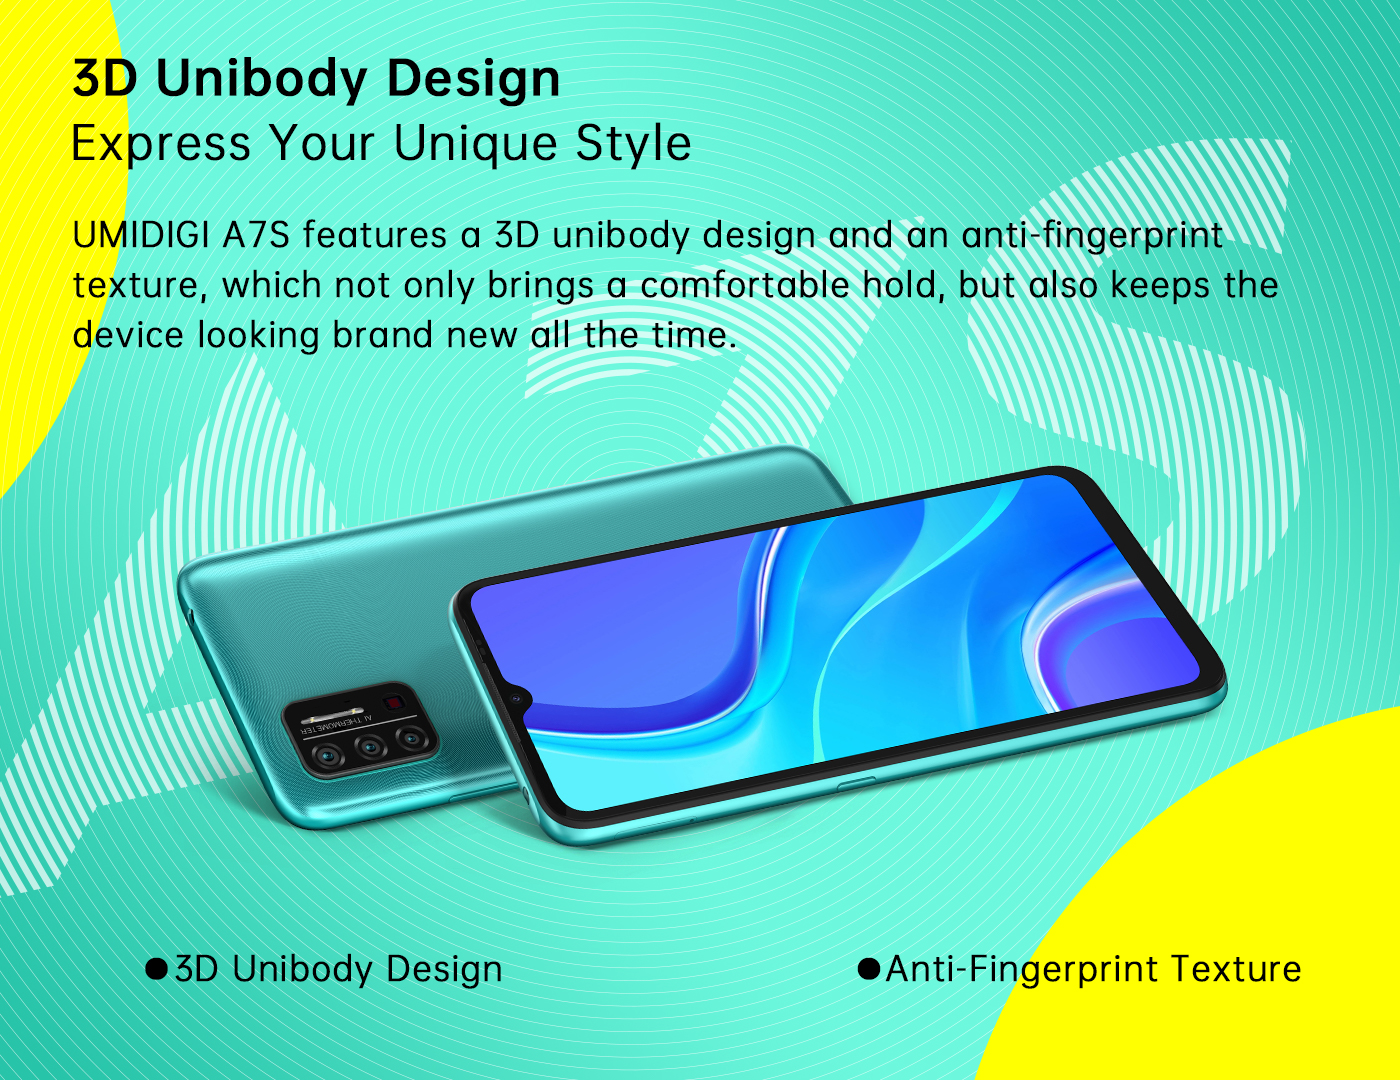 UMIDIGI A7S OS: Android 10 Go Color: Granite Grey / Sky Blue / Peacock Green…